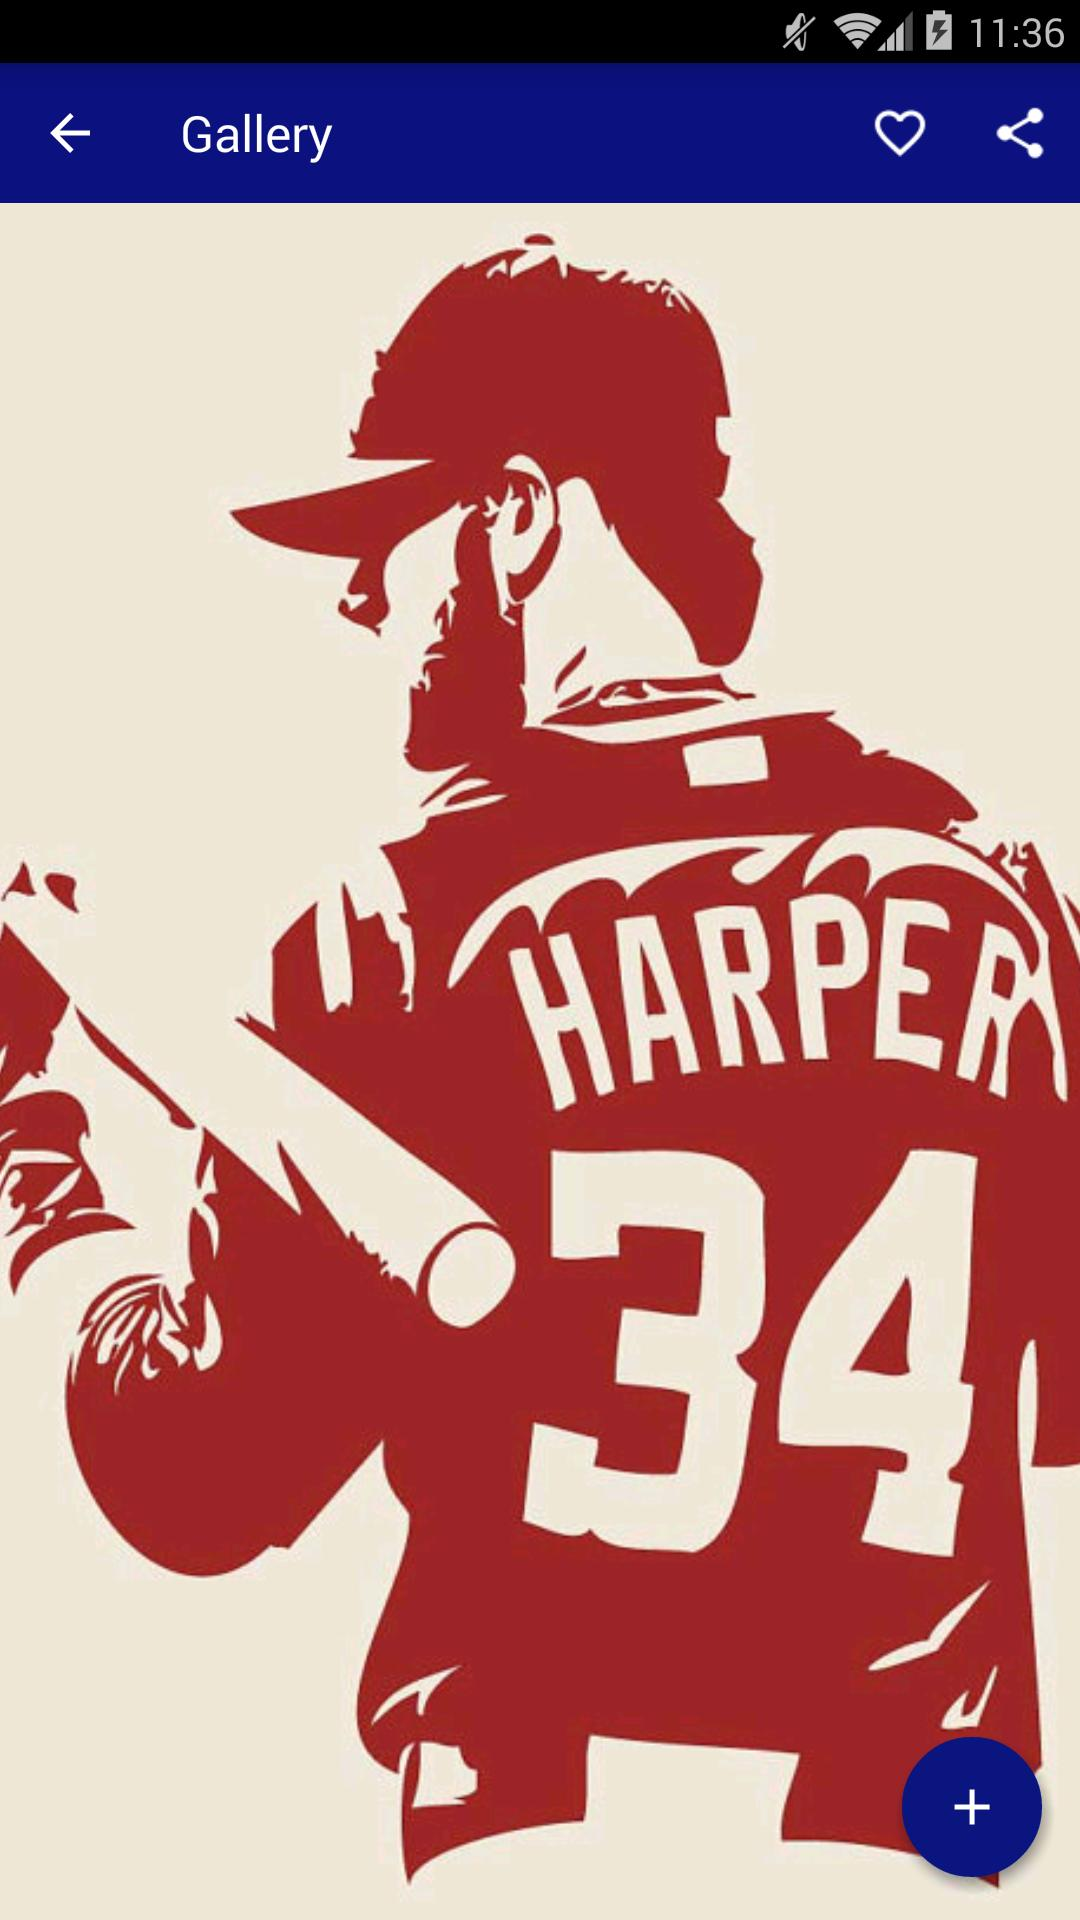 Bryce Harper Wallpapers Hd Mlb For Android Apk Download